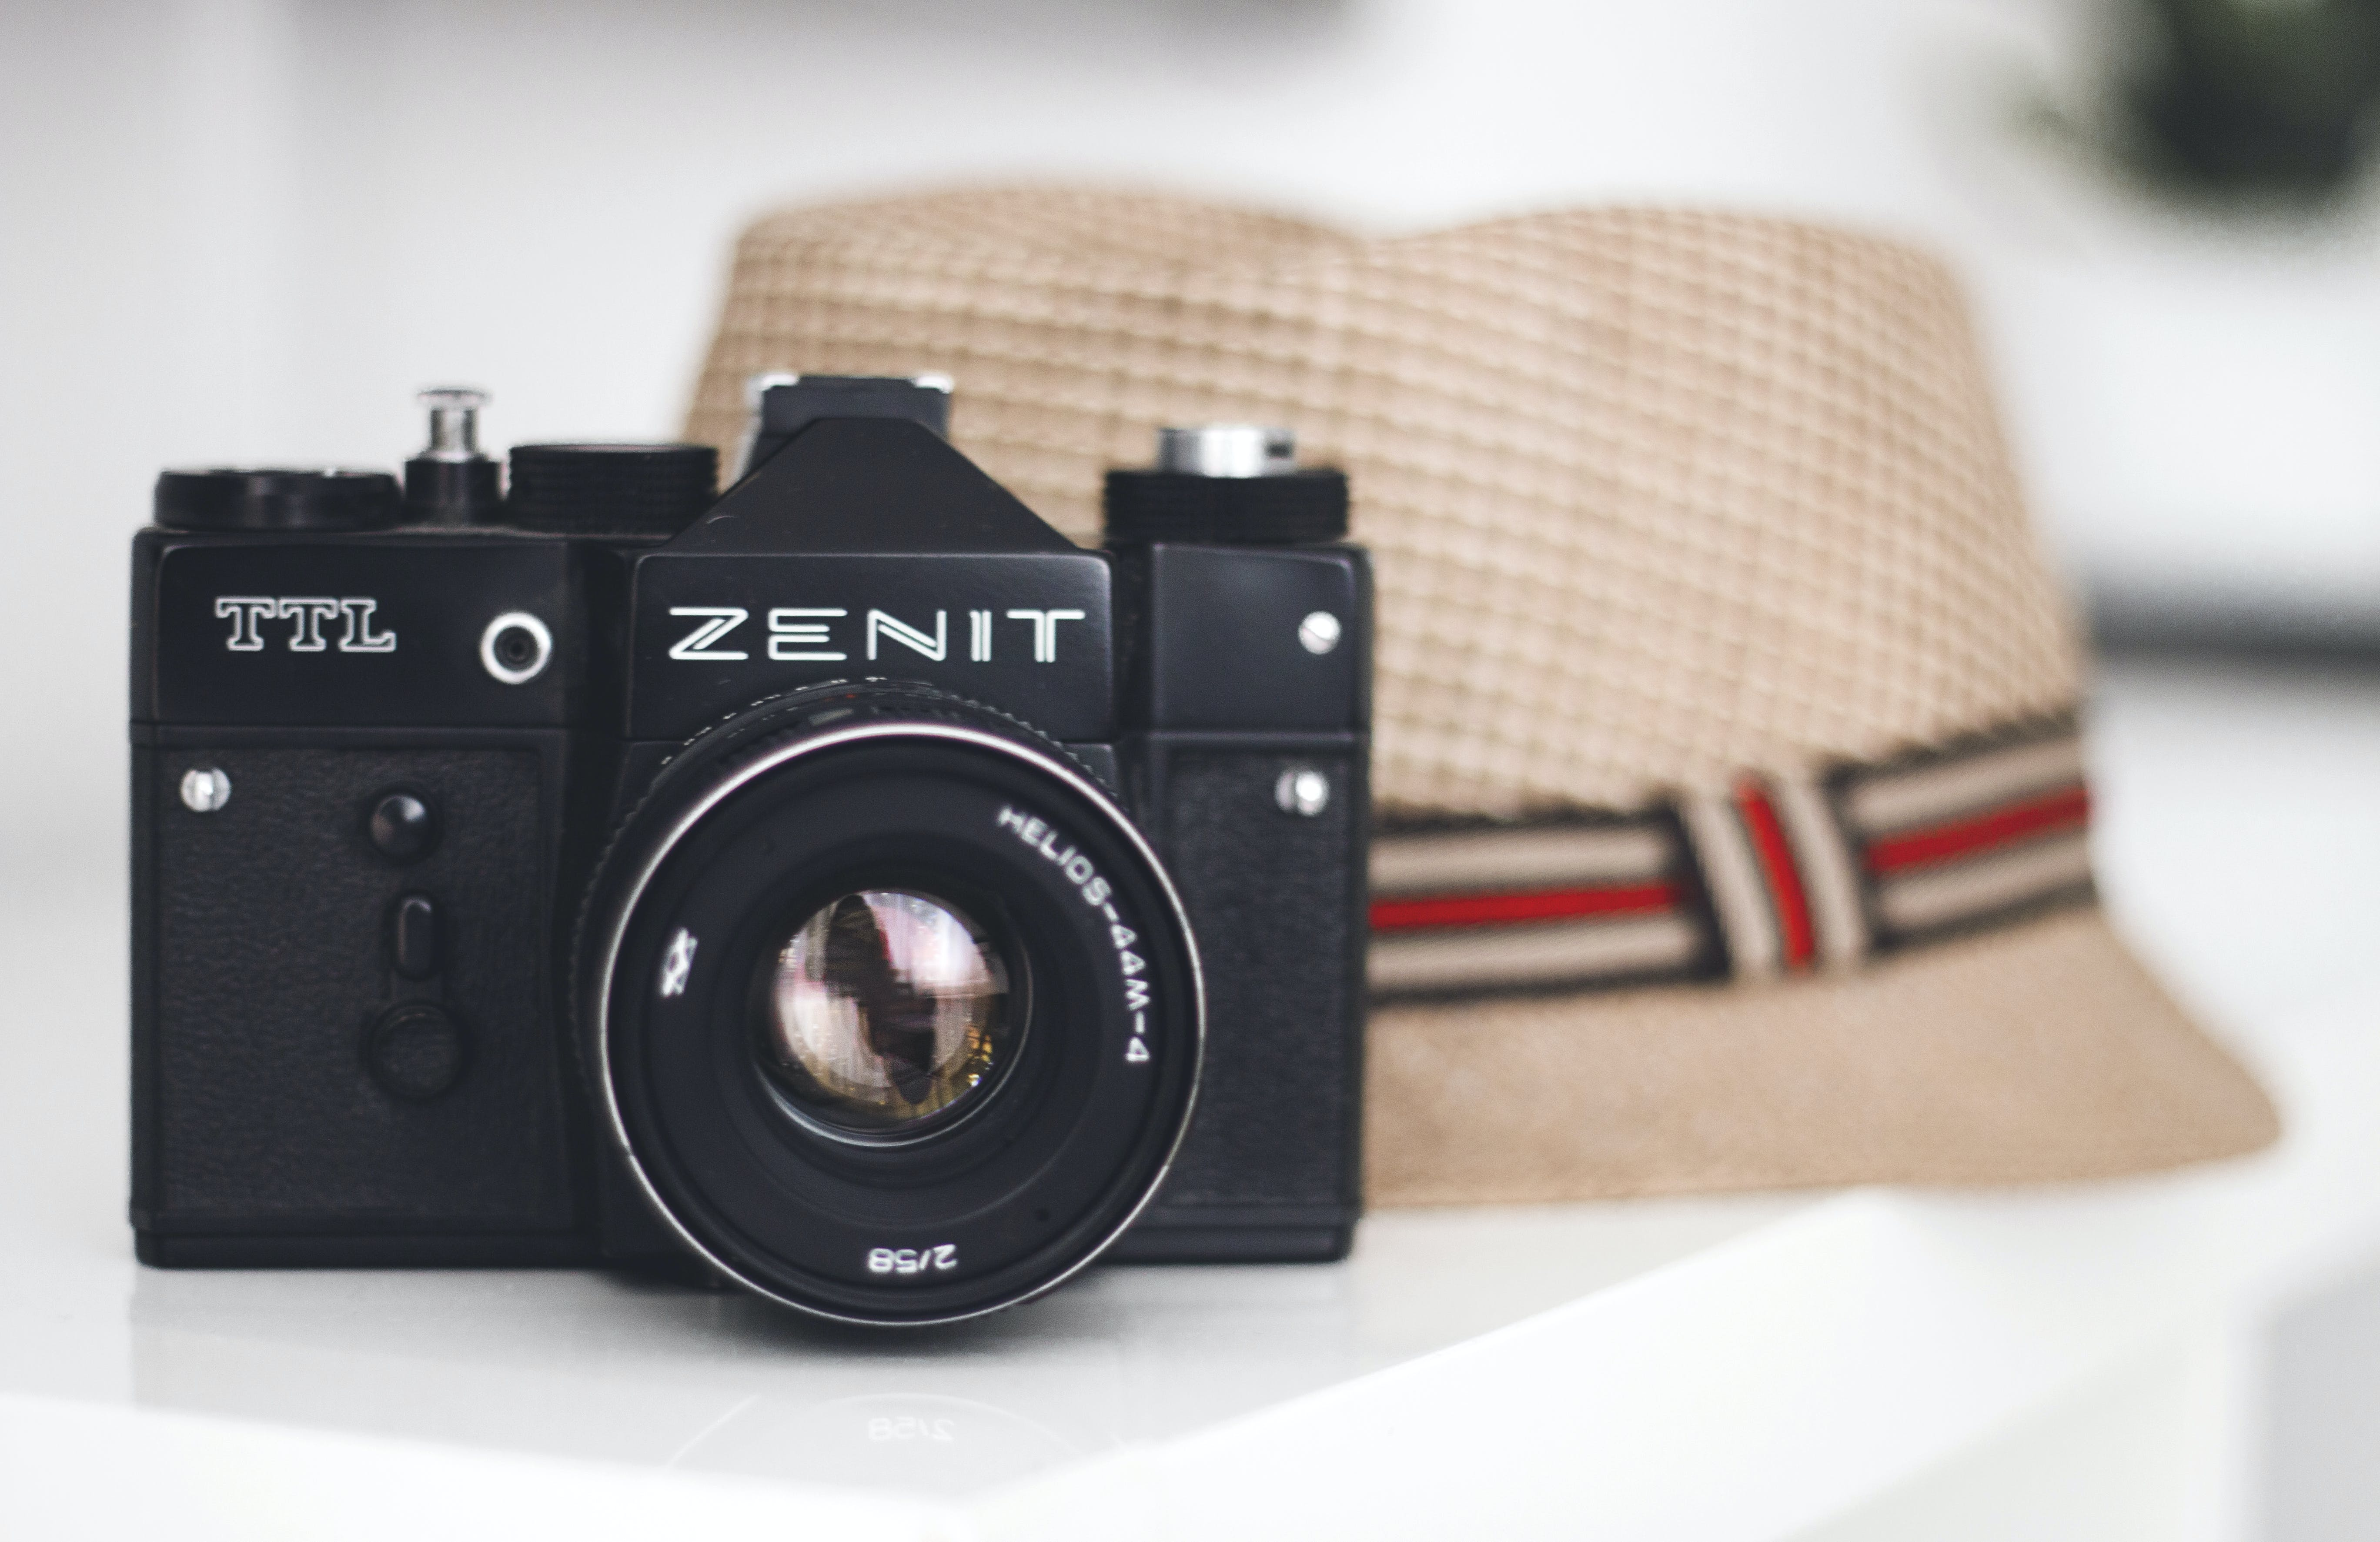 Zenit Brand Camera Beside Fedora Hat